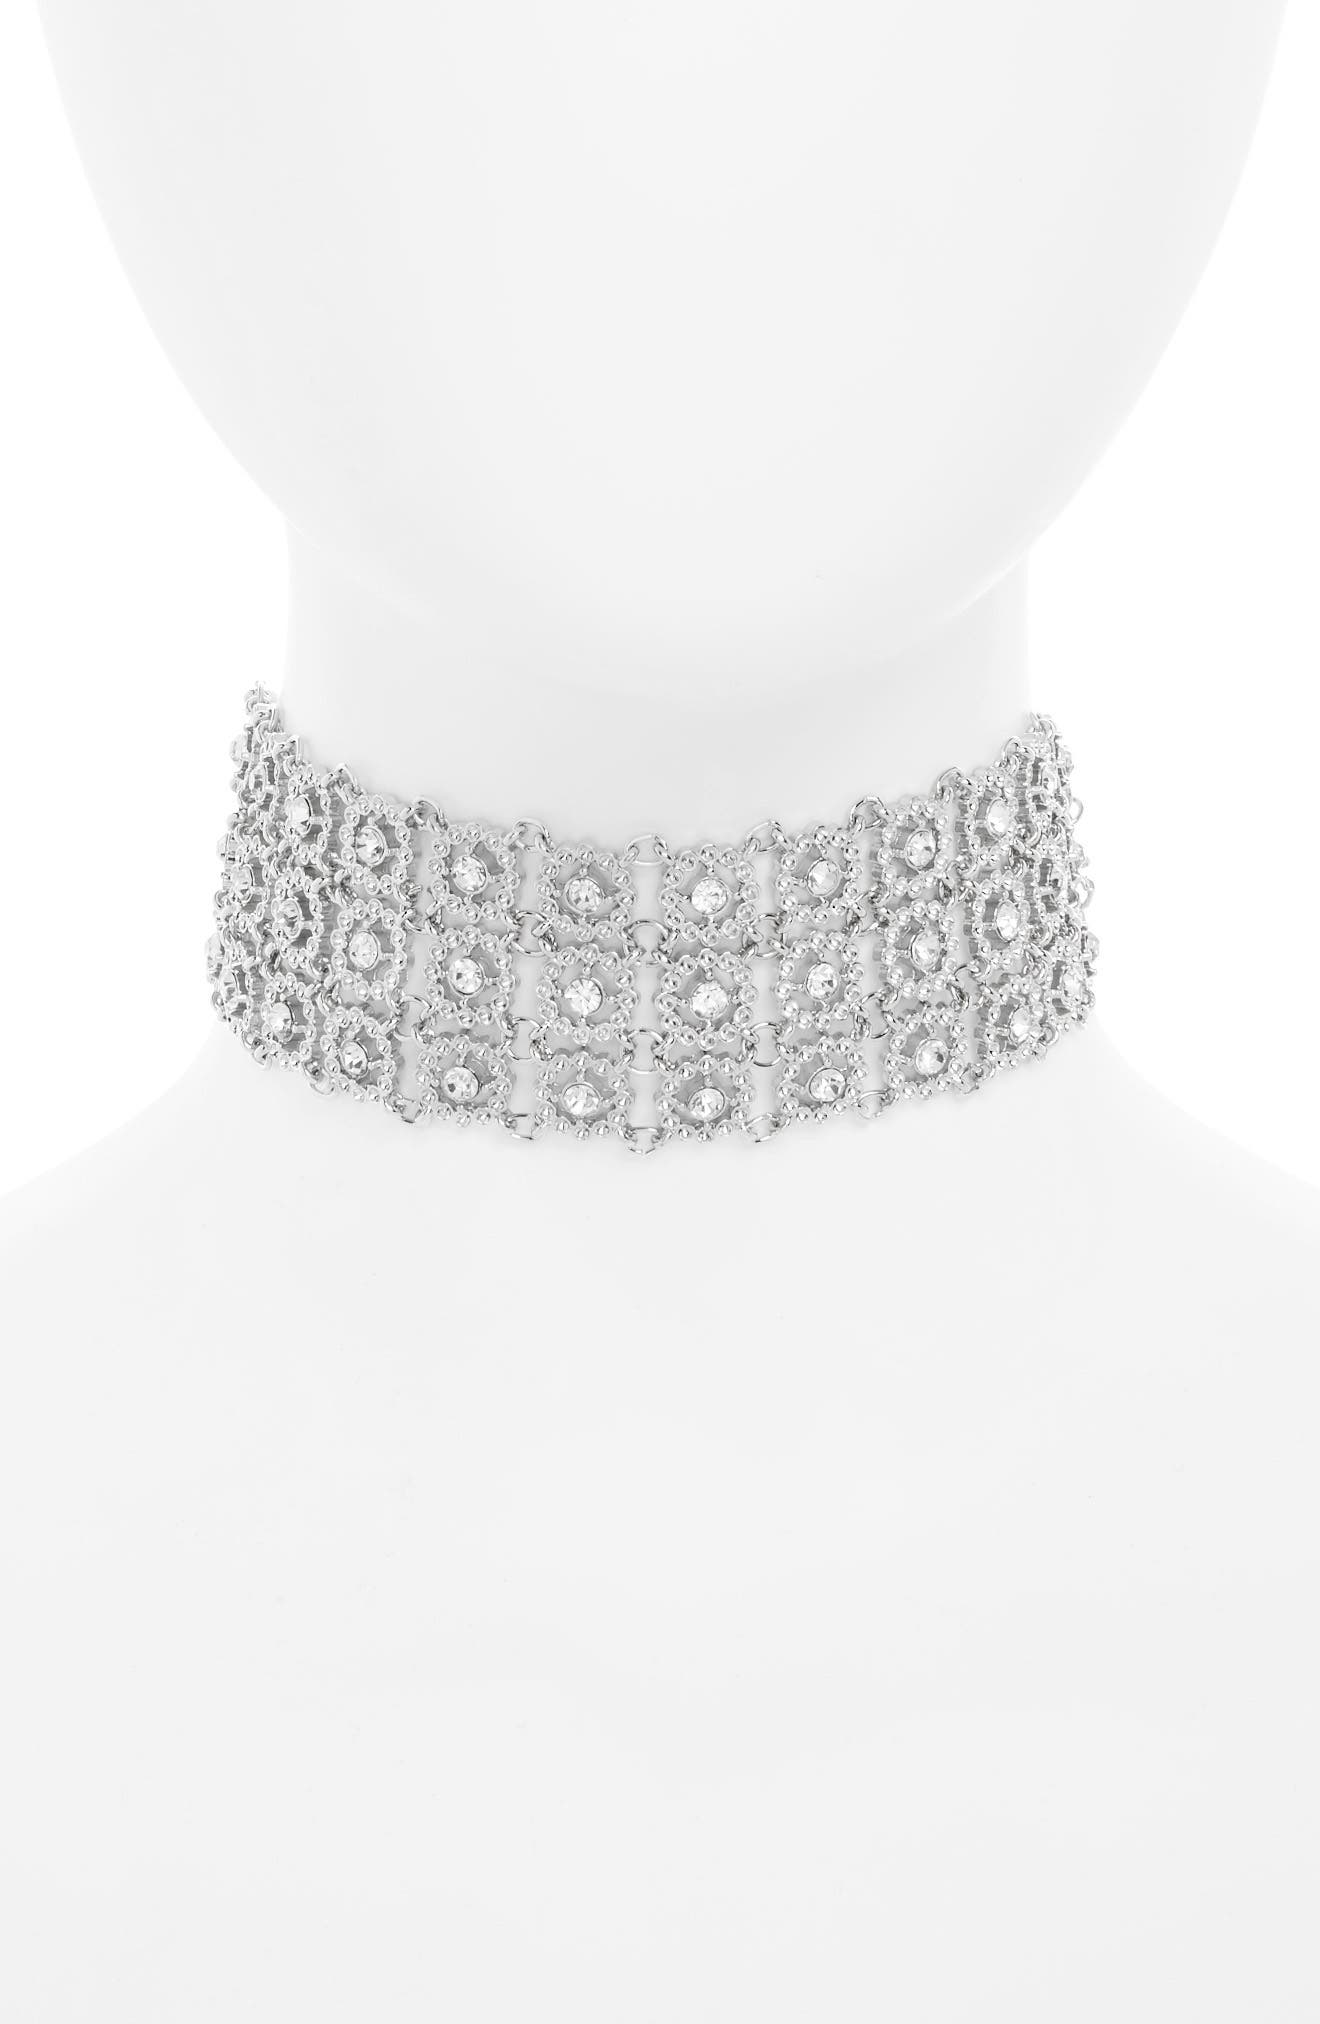 Crystal Flower Choker Necklace,                             Main thumbnail 1, color,                             040